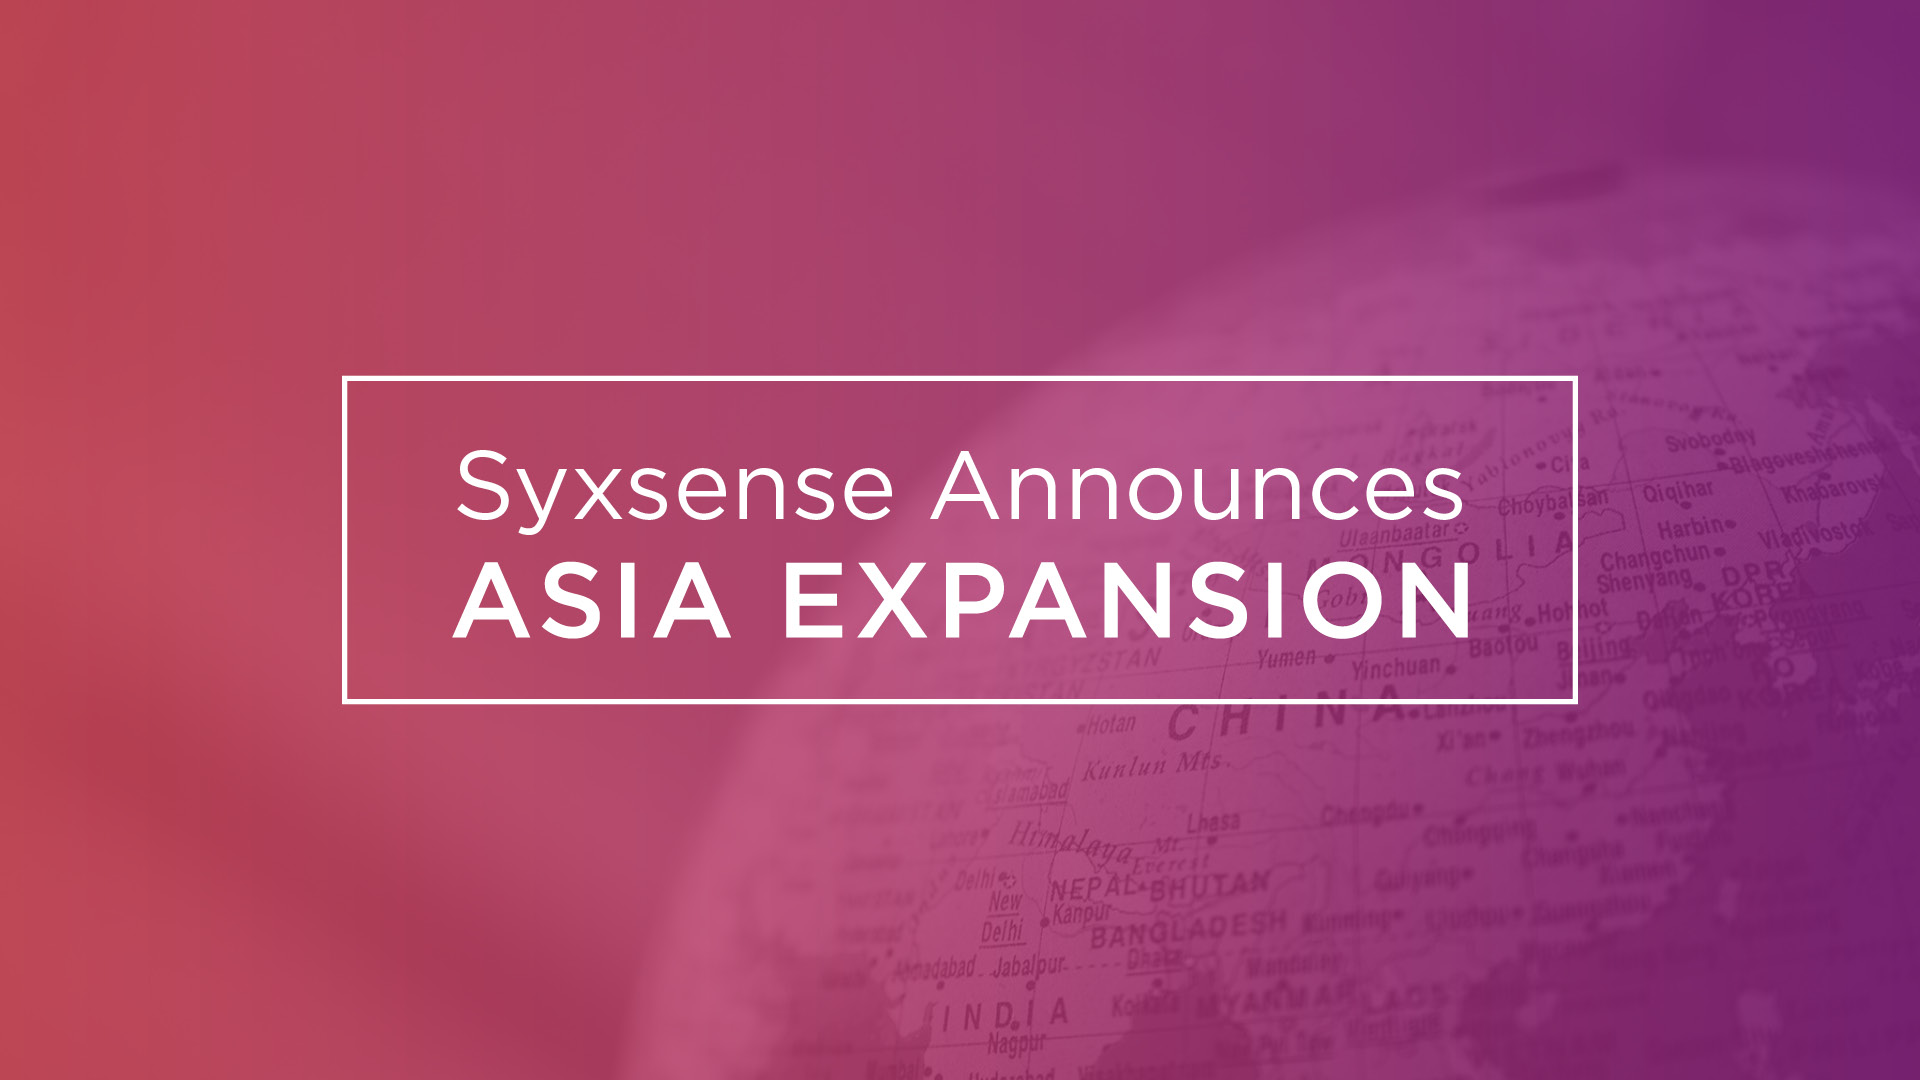 Syxsense Expands to Asia